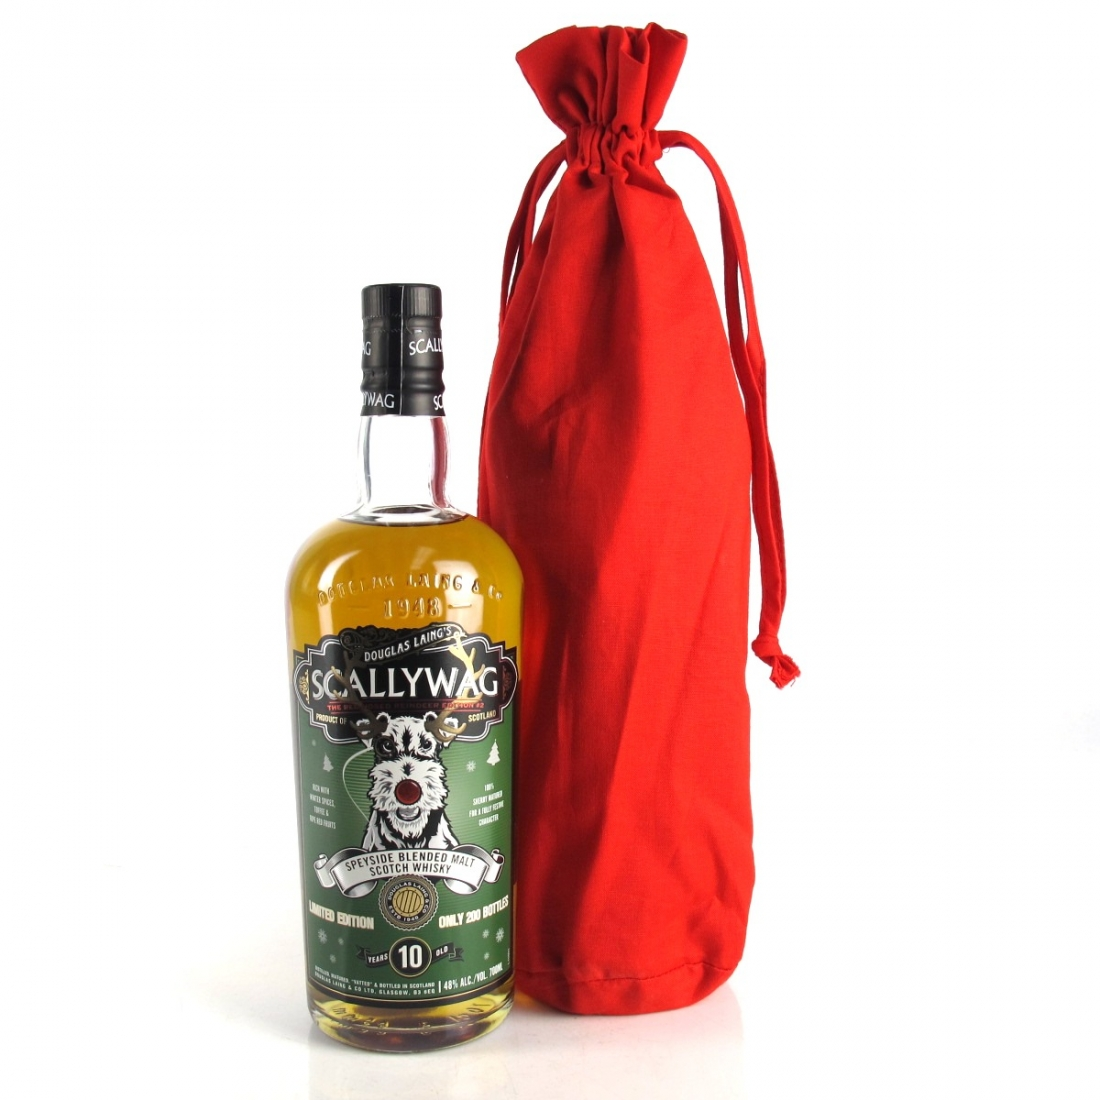 Scallywag 10 Year Old Speyside Blended Malt / Red-Nosed Reindeer Edition 2